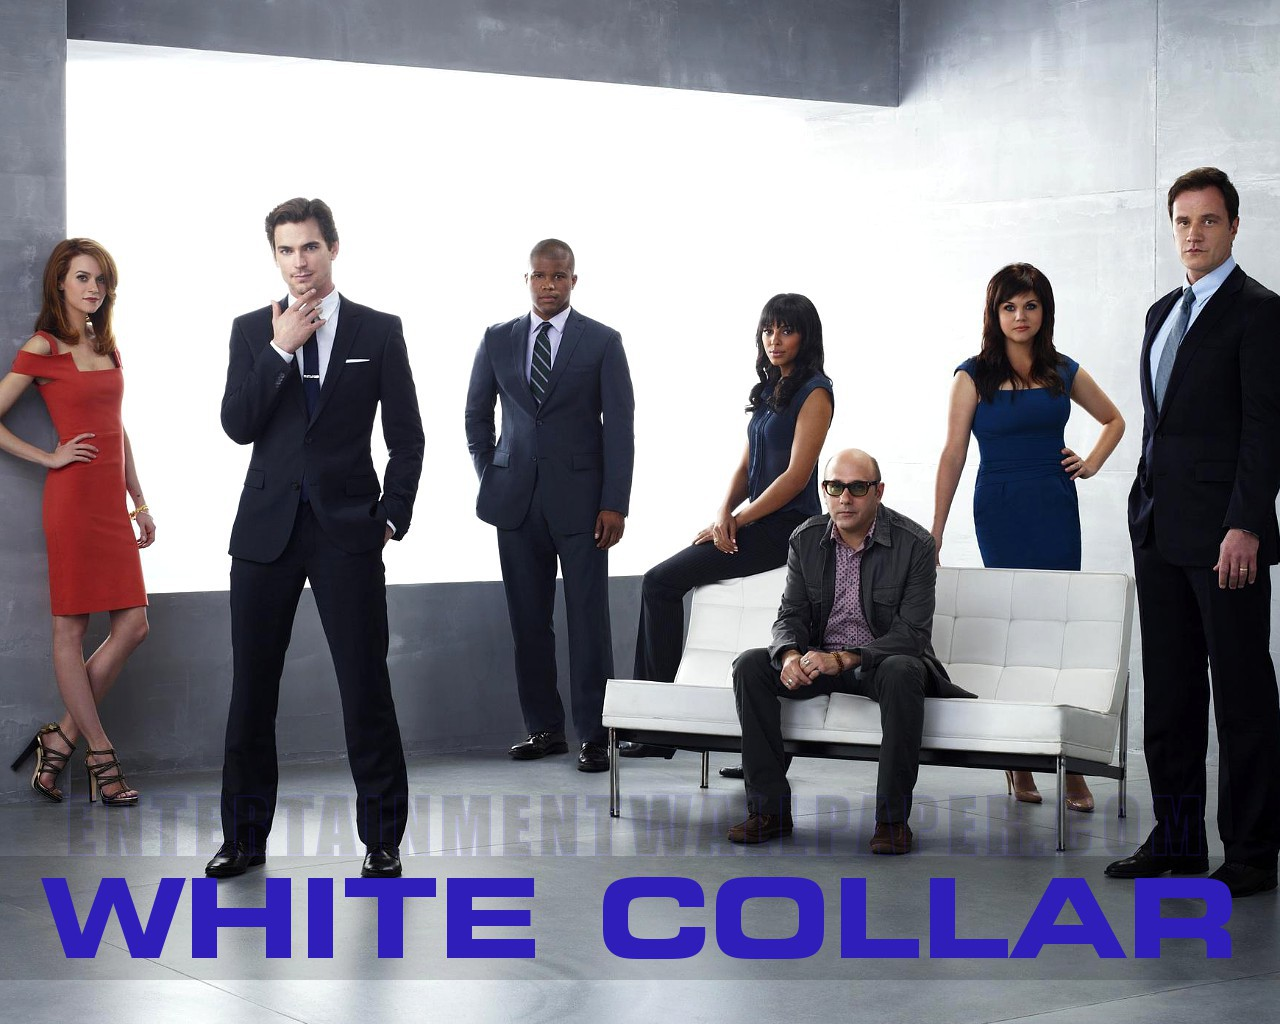 White Collar - White Collar Wallpaper (34568980) - Fanpop